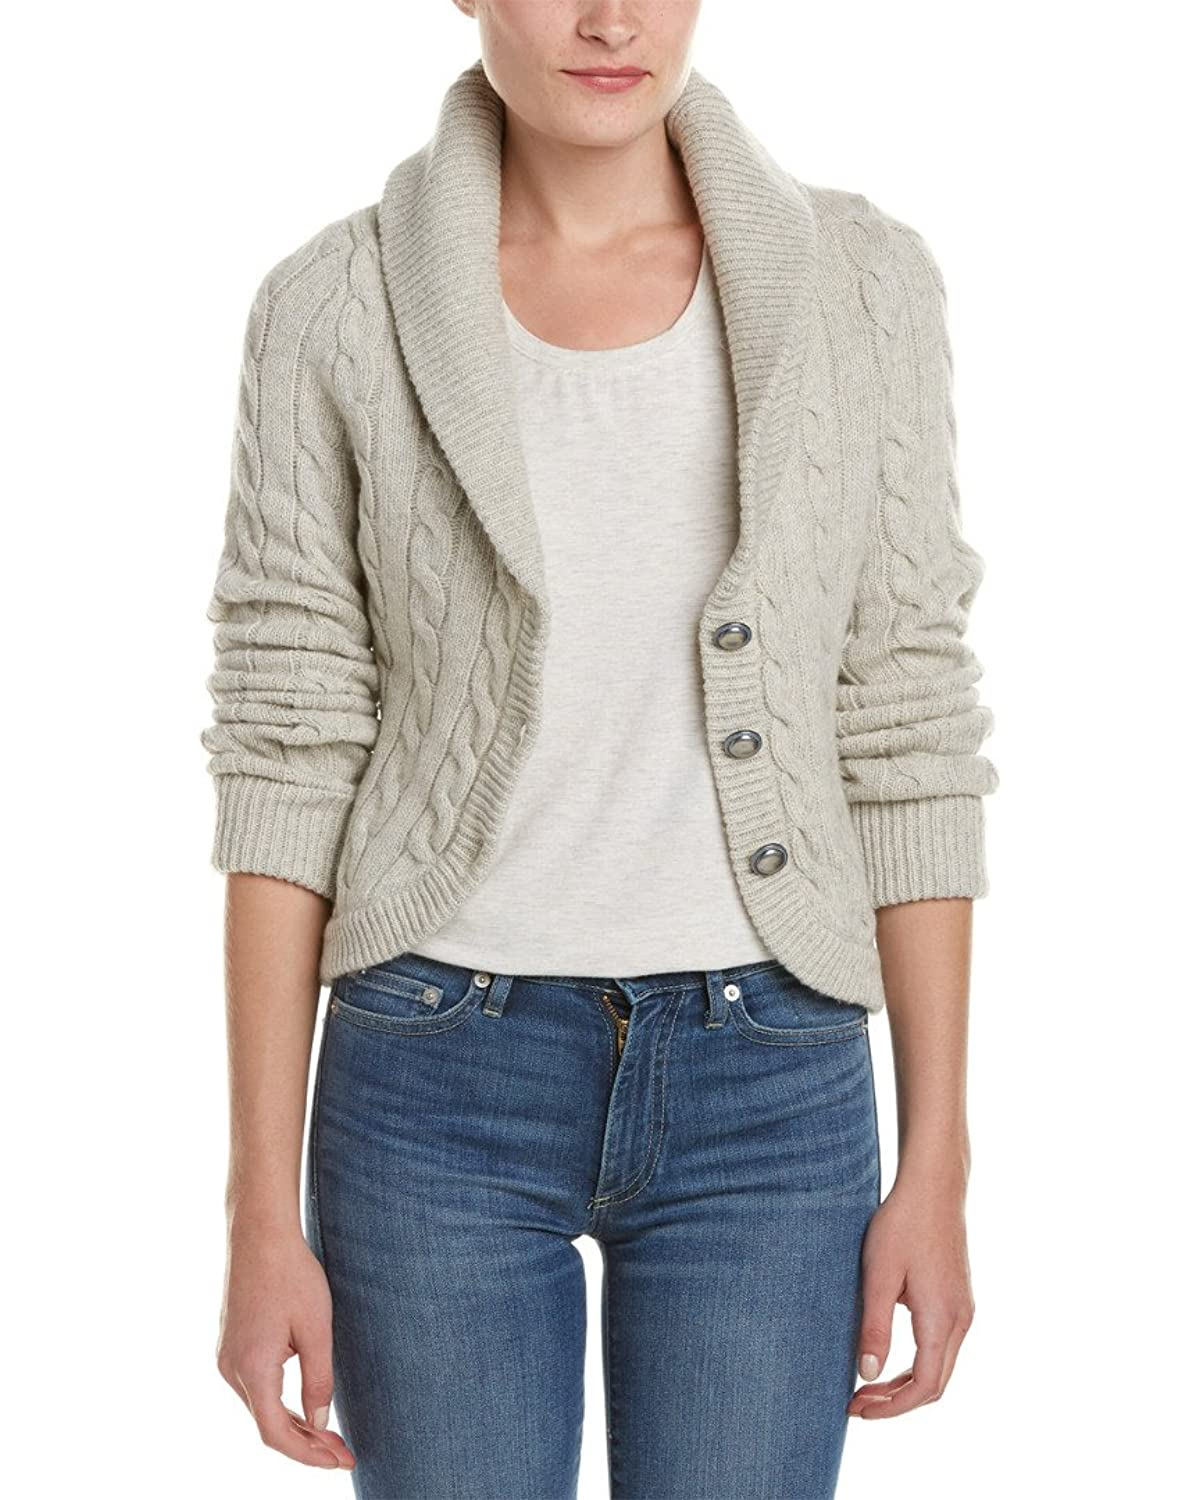 Free People Womens Cable Knit Cardigan Sweater